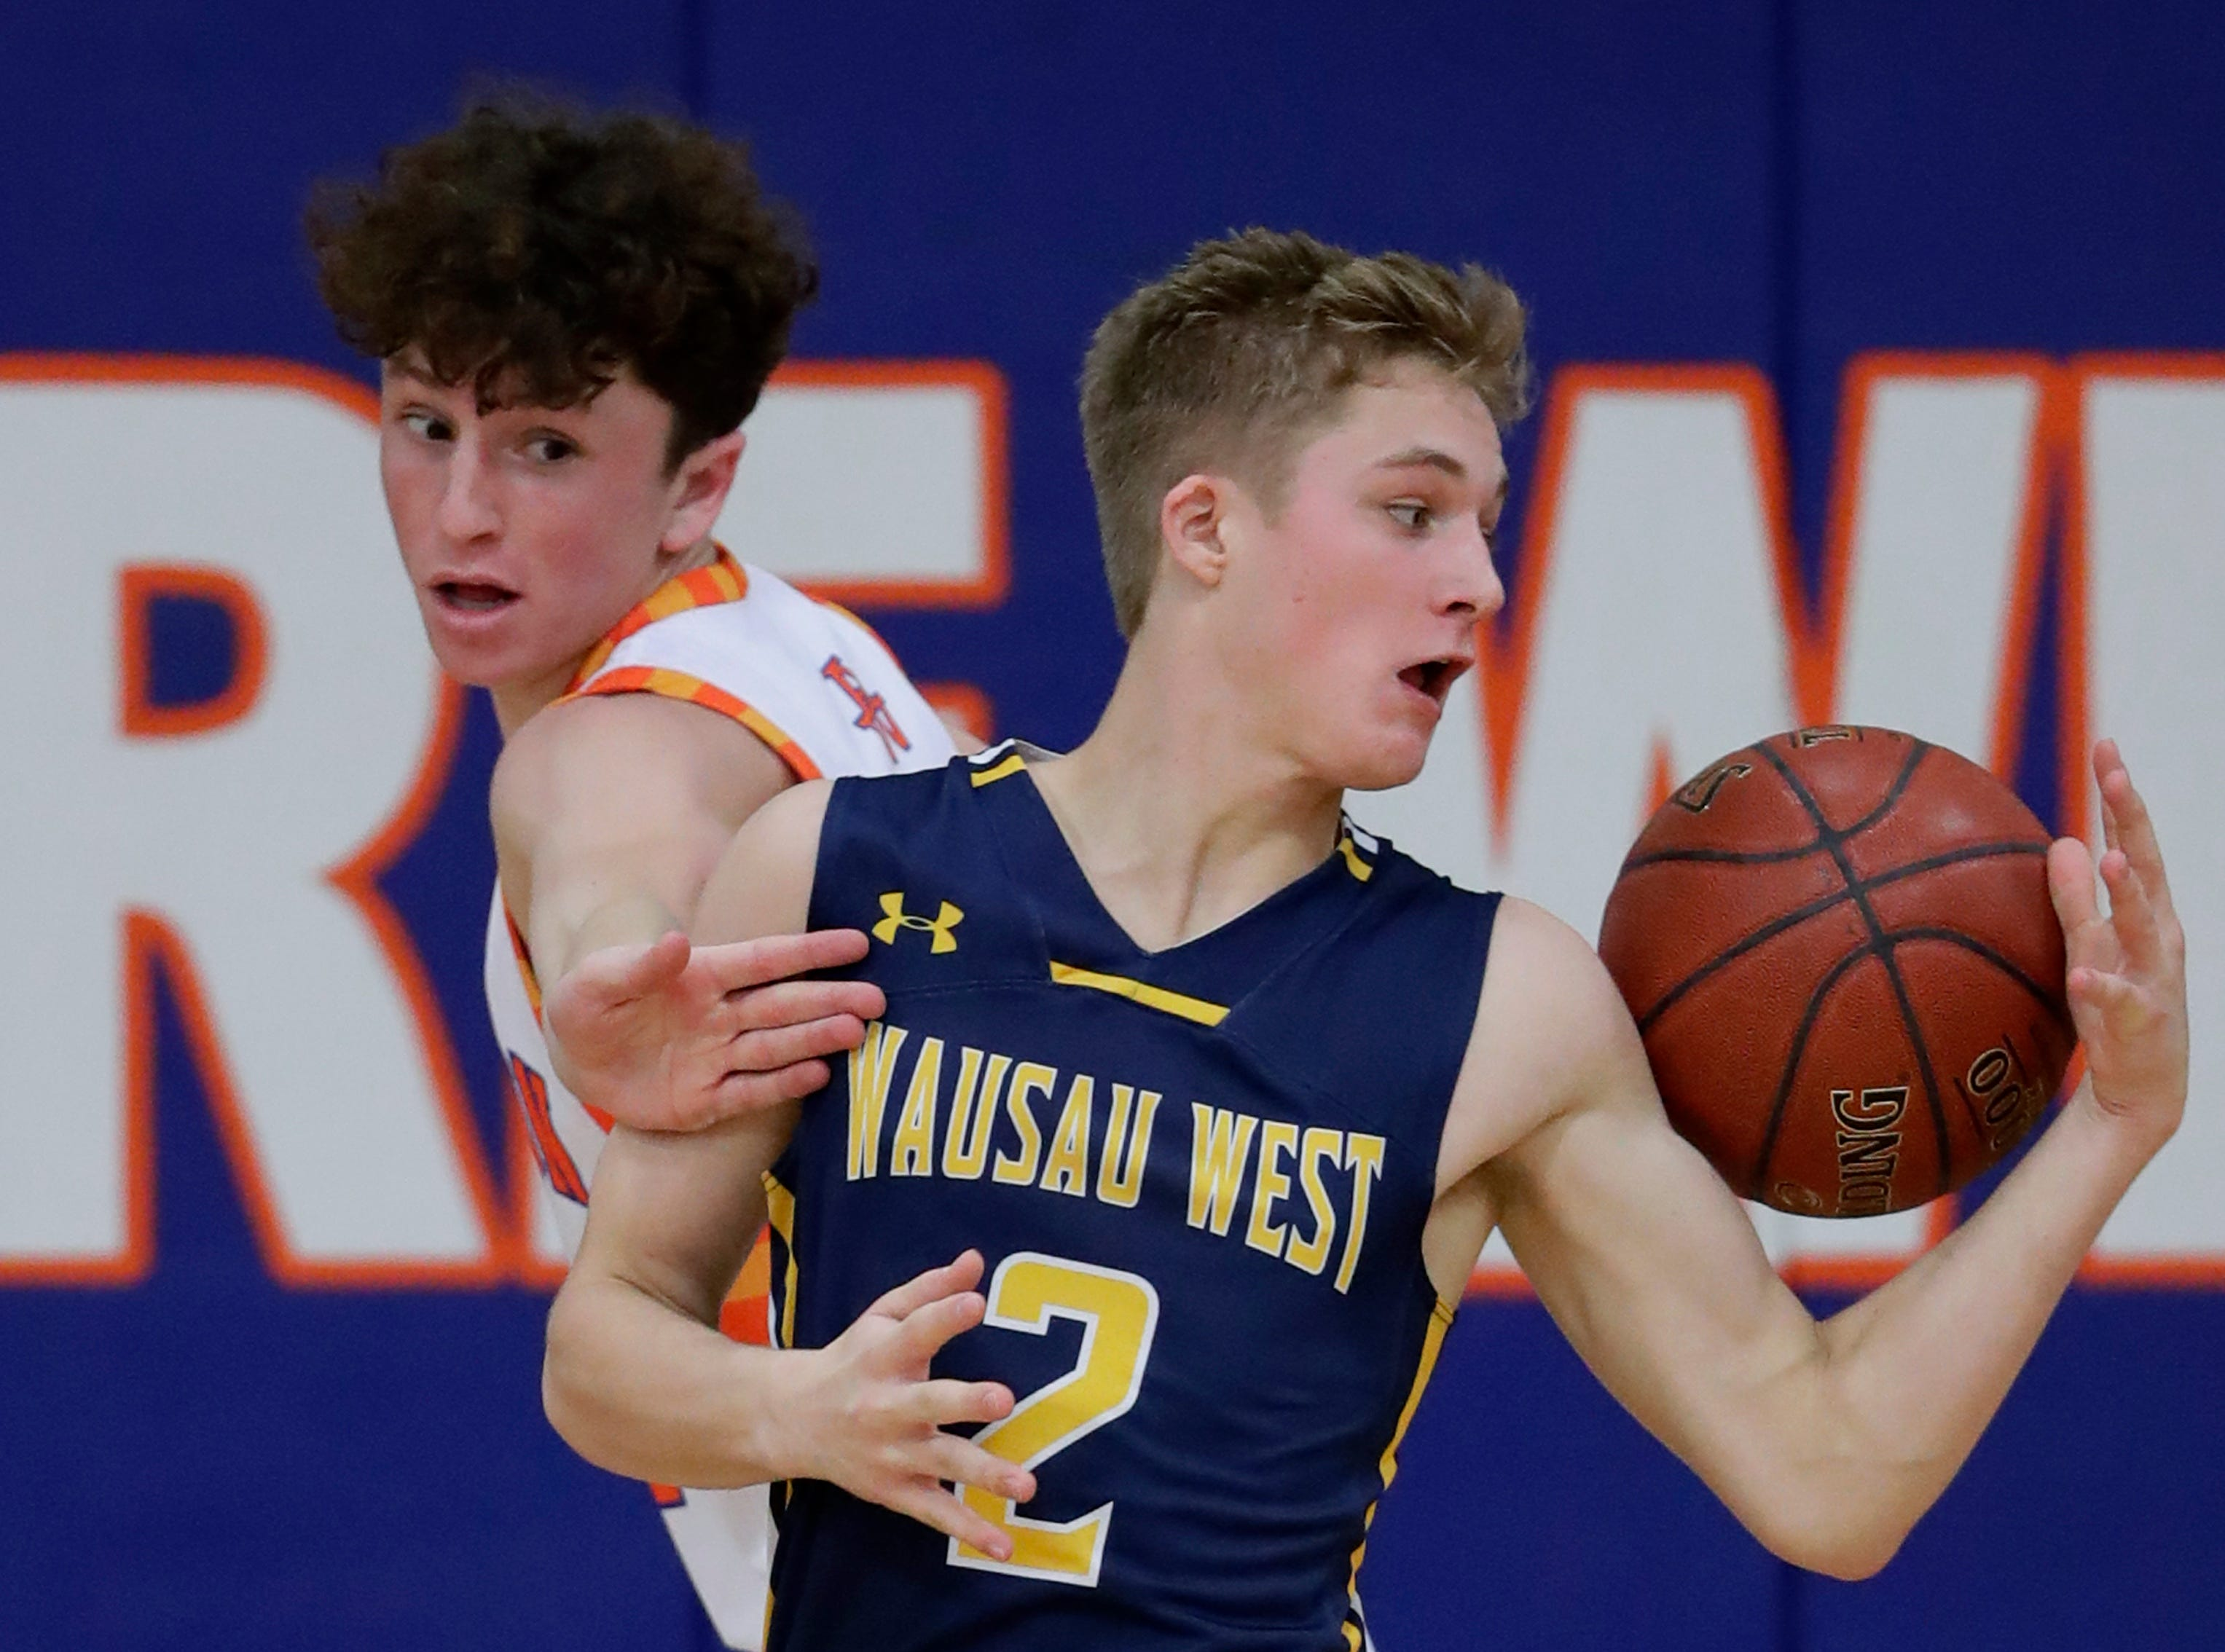 Appleton West  High School's Will Mahoney (21) defends against Wausau West High School's Mitchell Zahurones (2) during their boys basketball game Friday, December 28, 2018, in Appleton, Wis. Dan Powers/USA TODAY NETWORK-Wisconsin